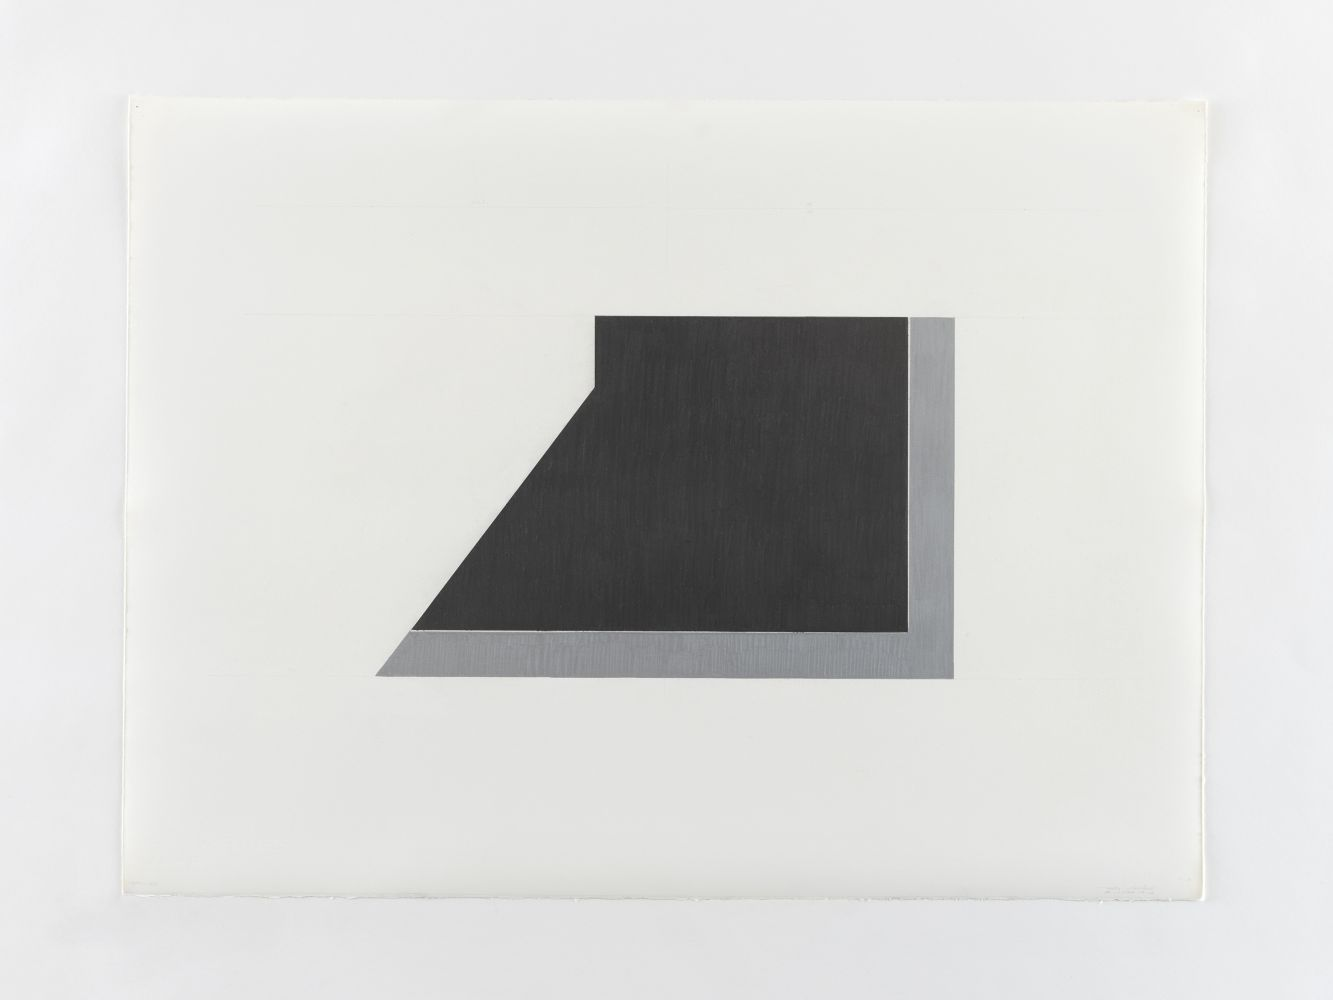 Ted Stamm 78-W-3D (Wooster), 1978 silver pencil and graphite on paper 22 1/4 x 29 7/8 inches